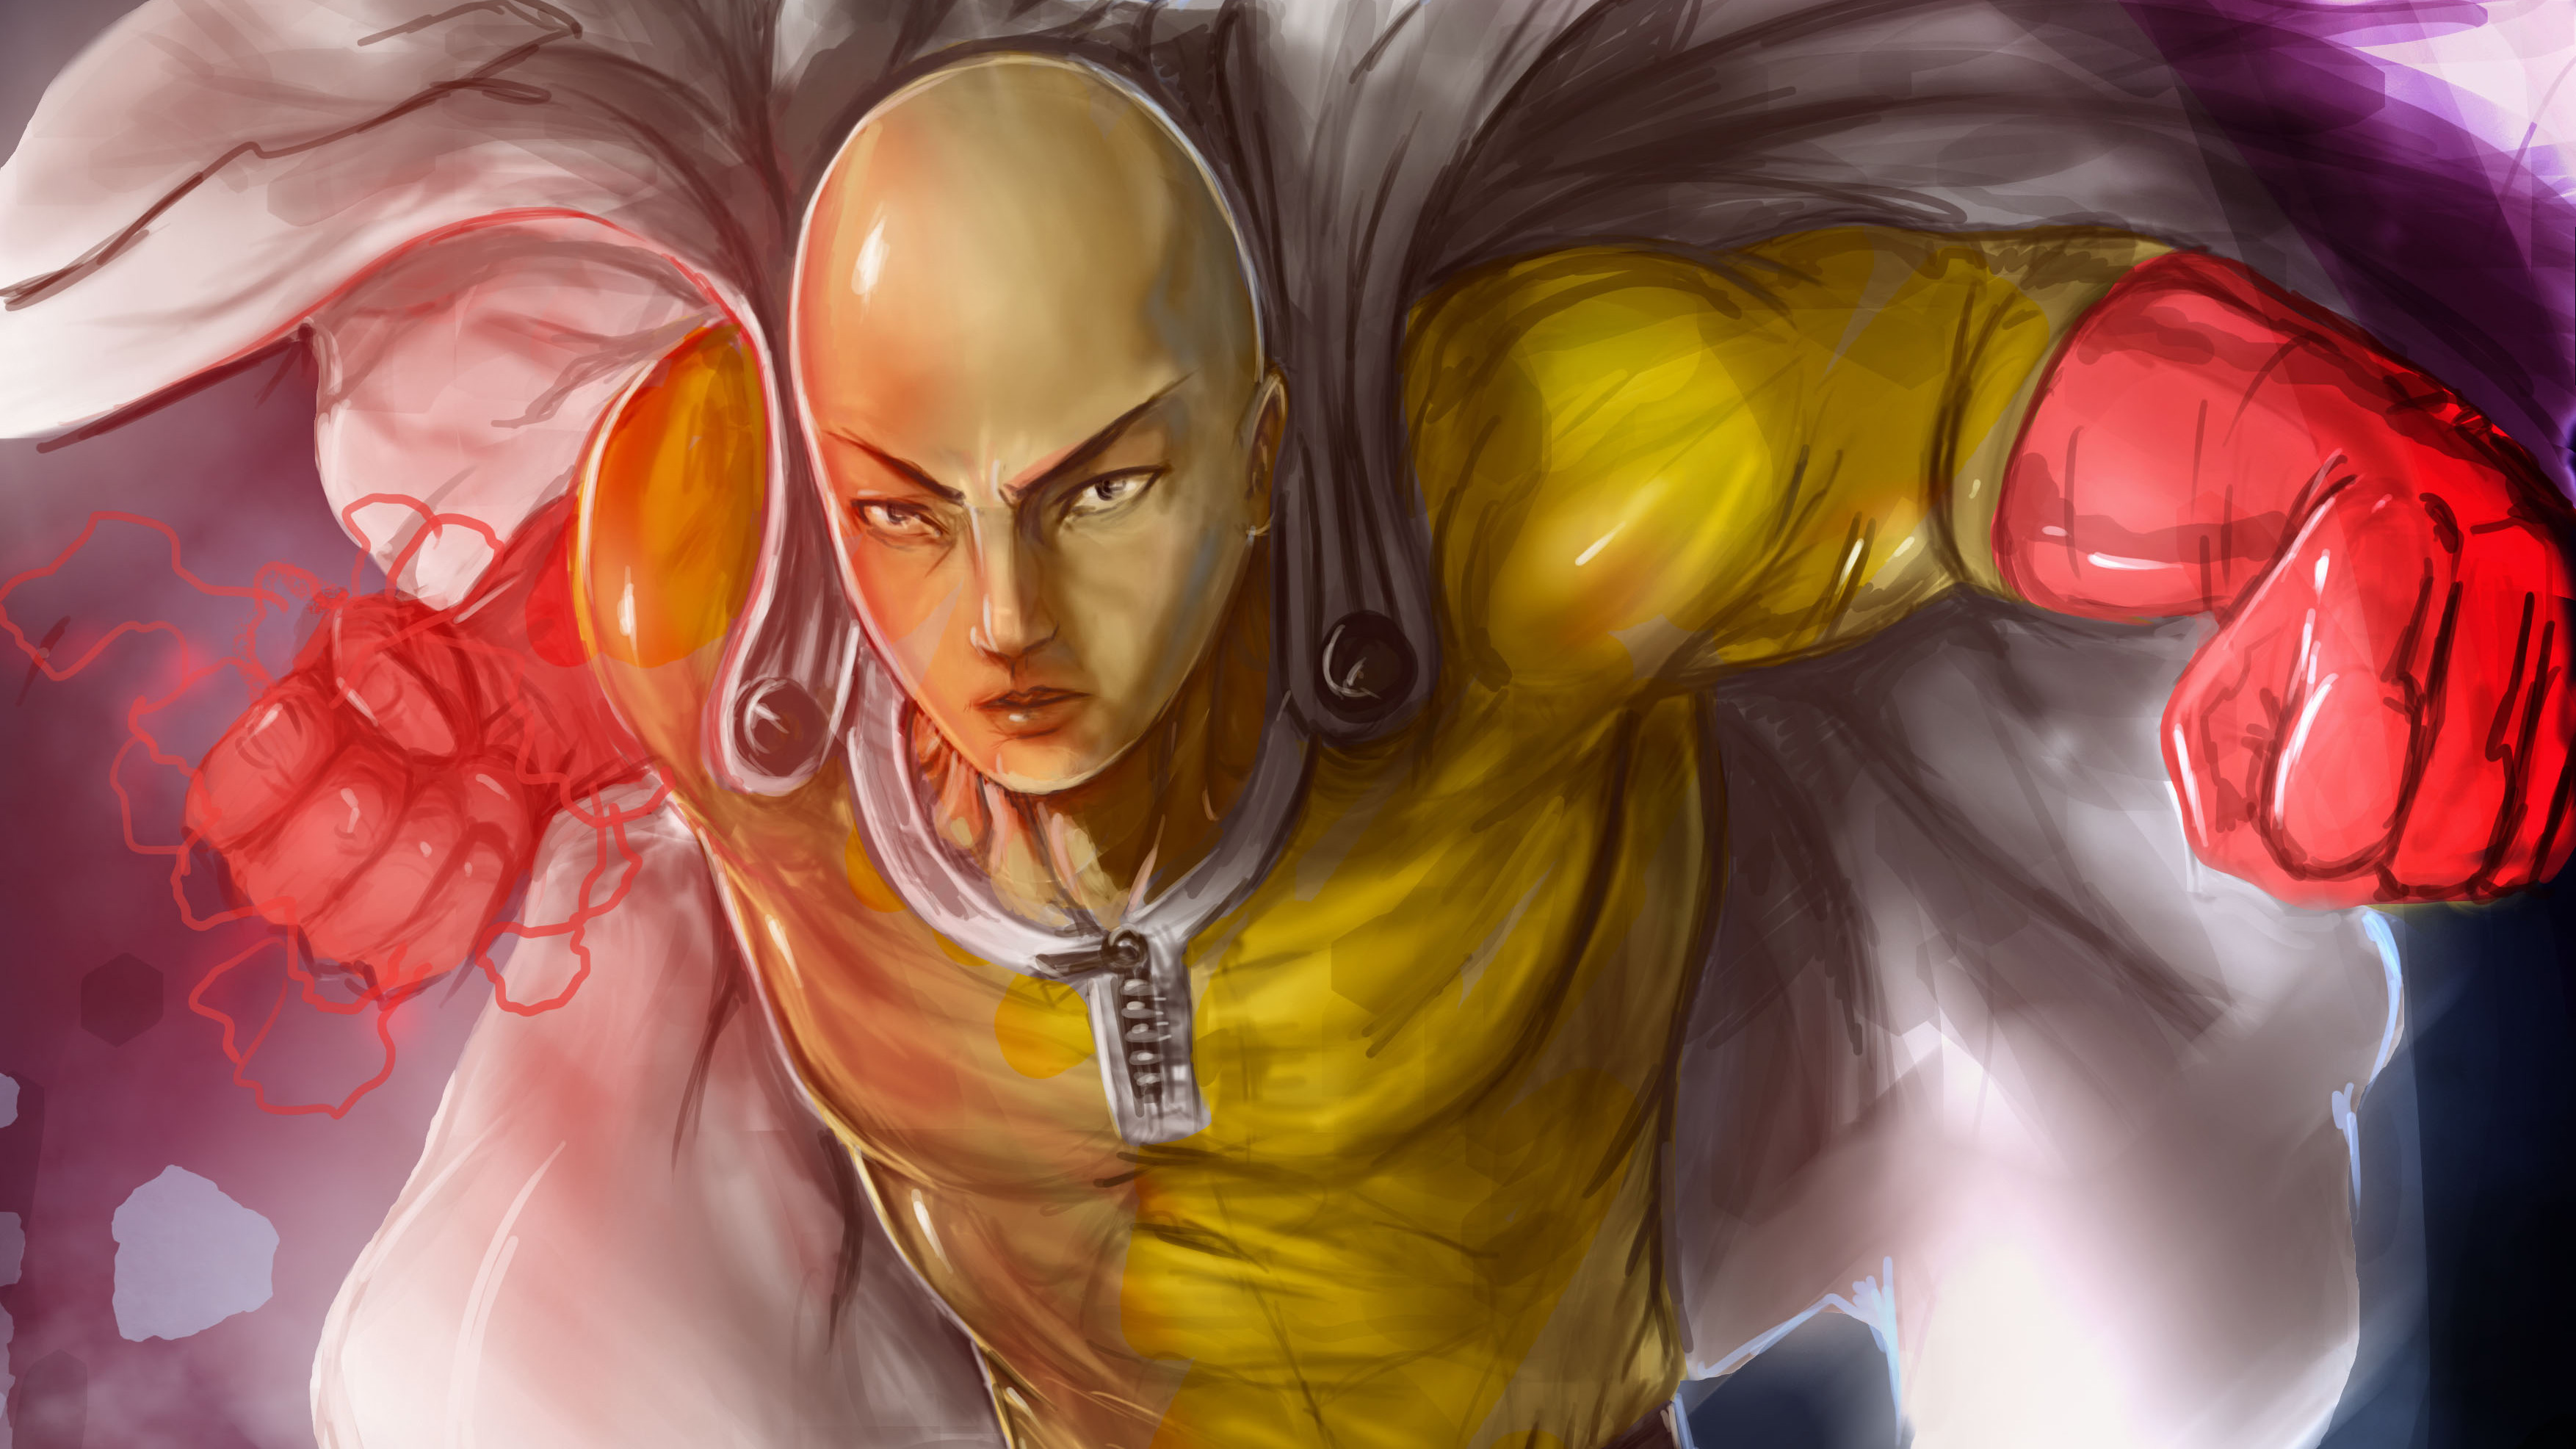 One Punch Man Artwork 4k Hd Anime 4k Wallpapers Images